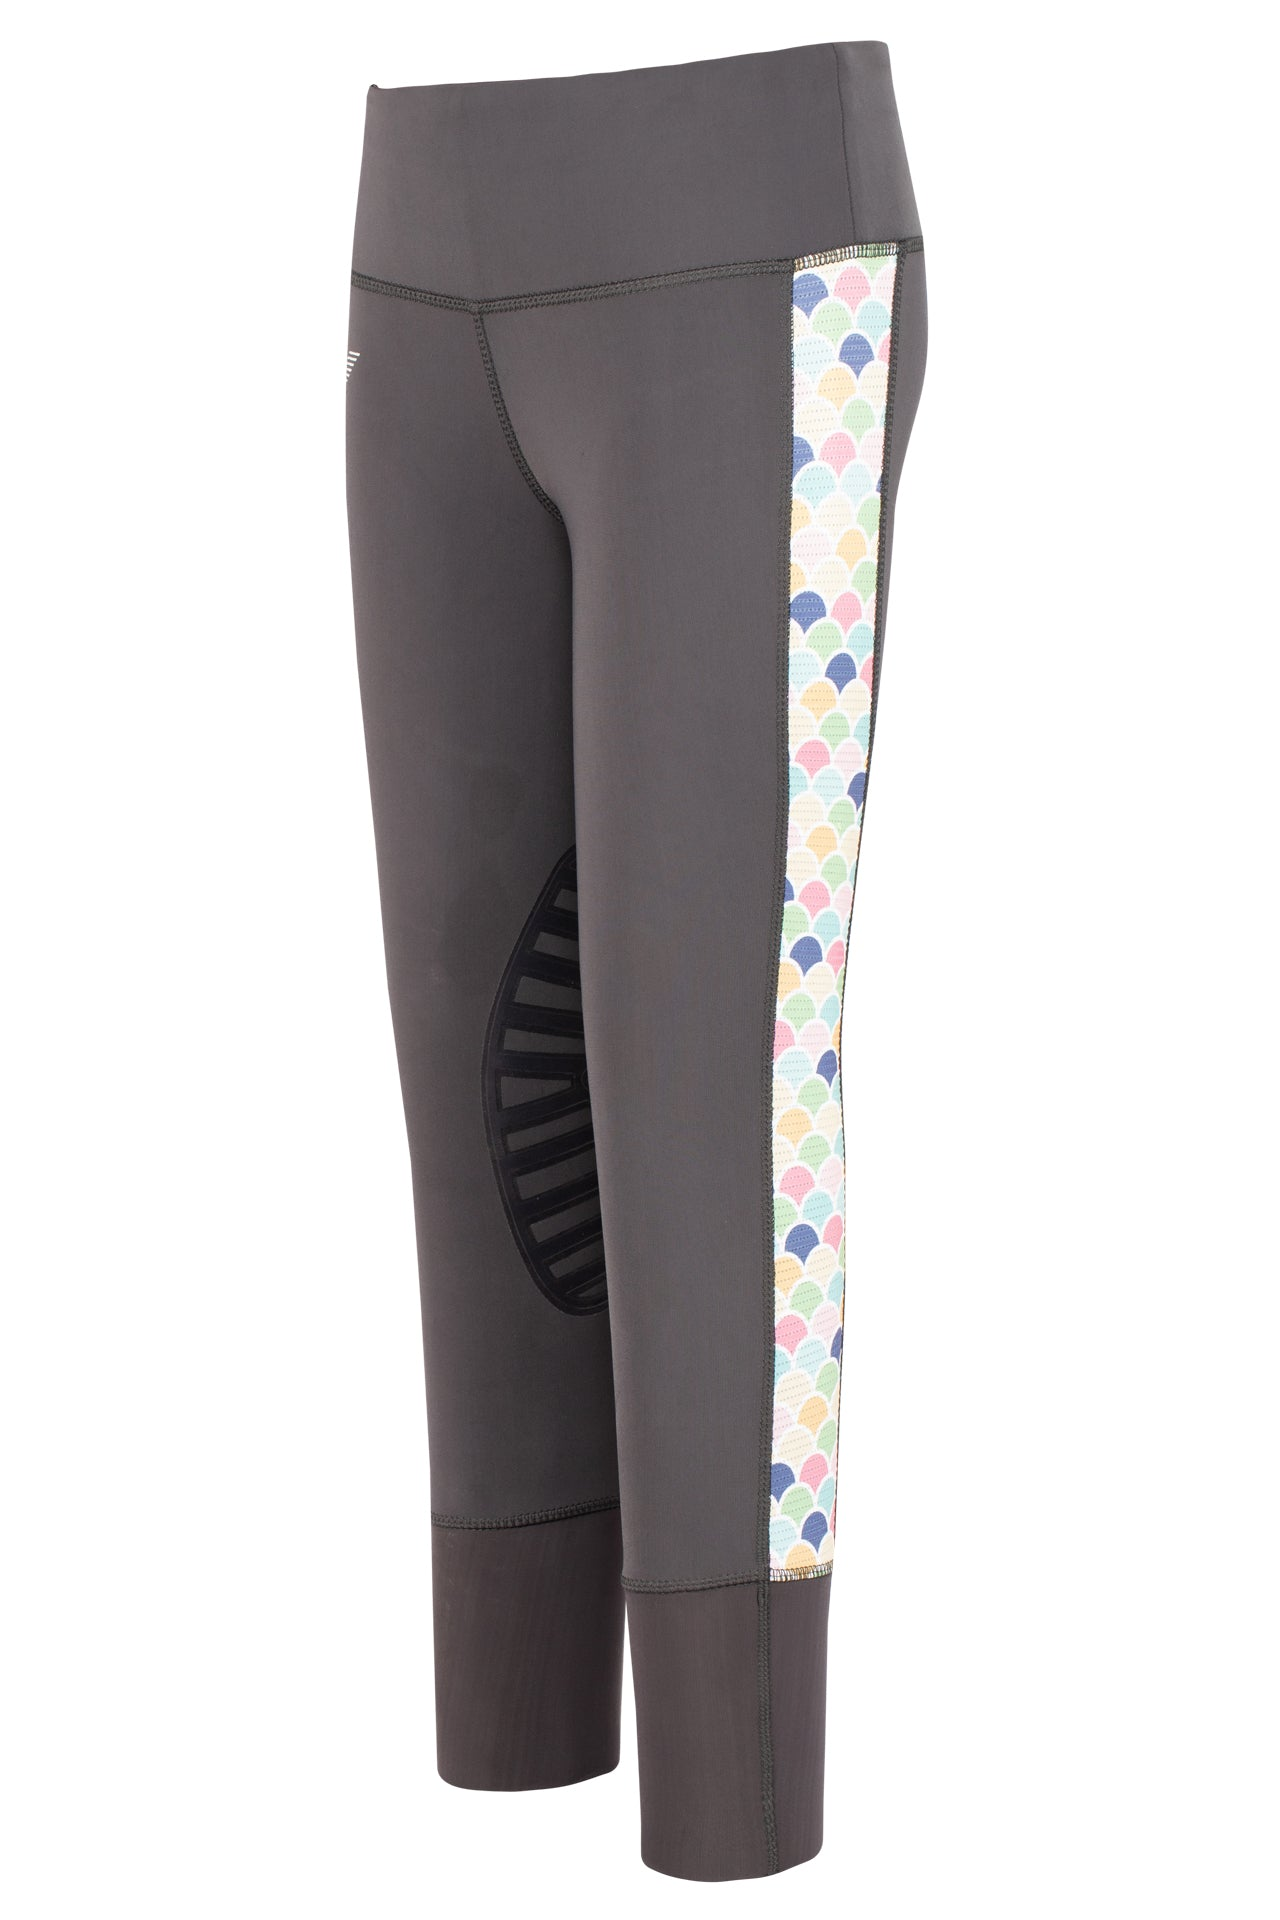 TuffRider Children's Iris EquiCool Riding Tights - Breeches.com